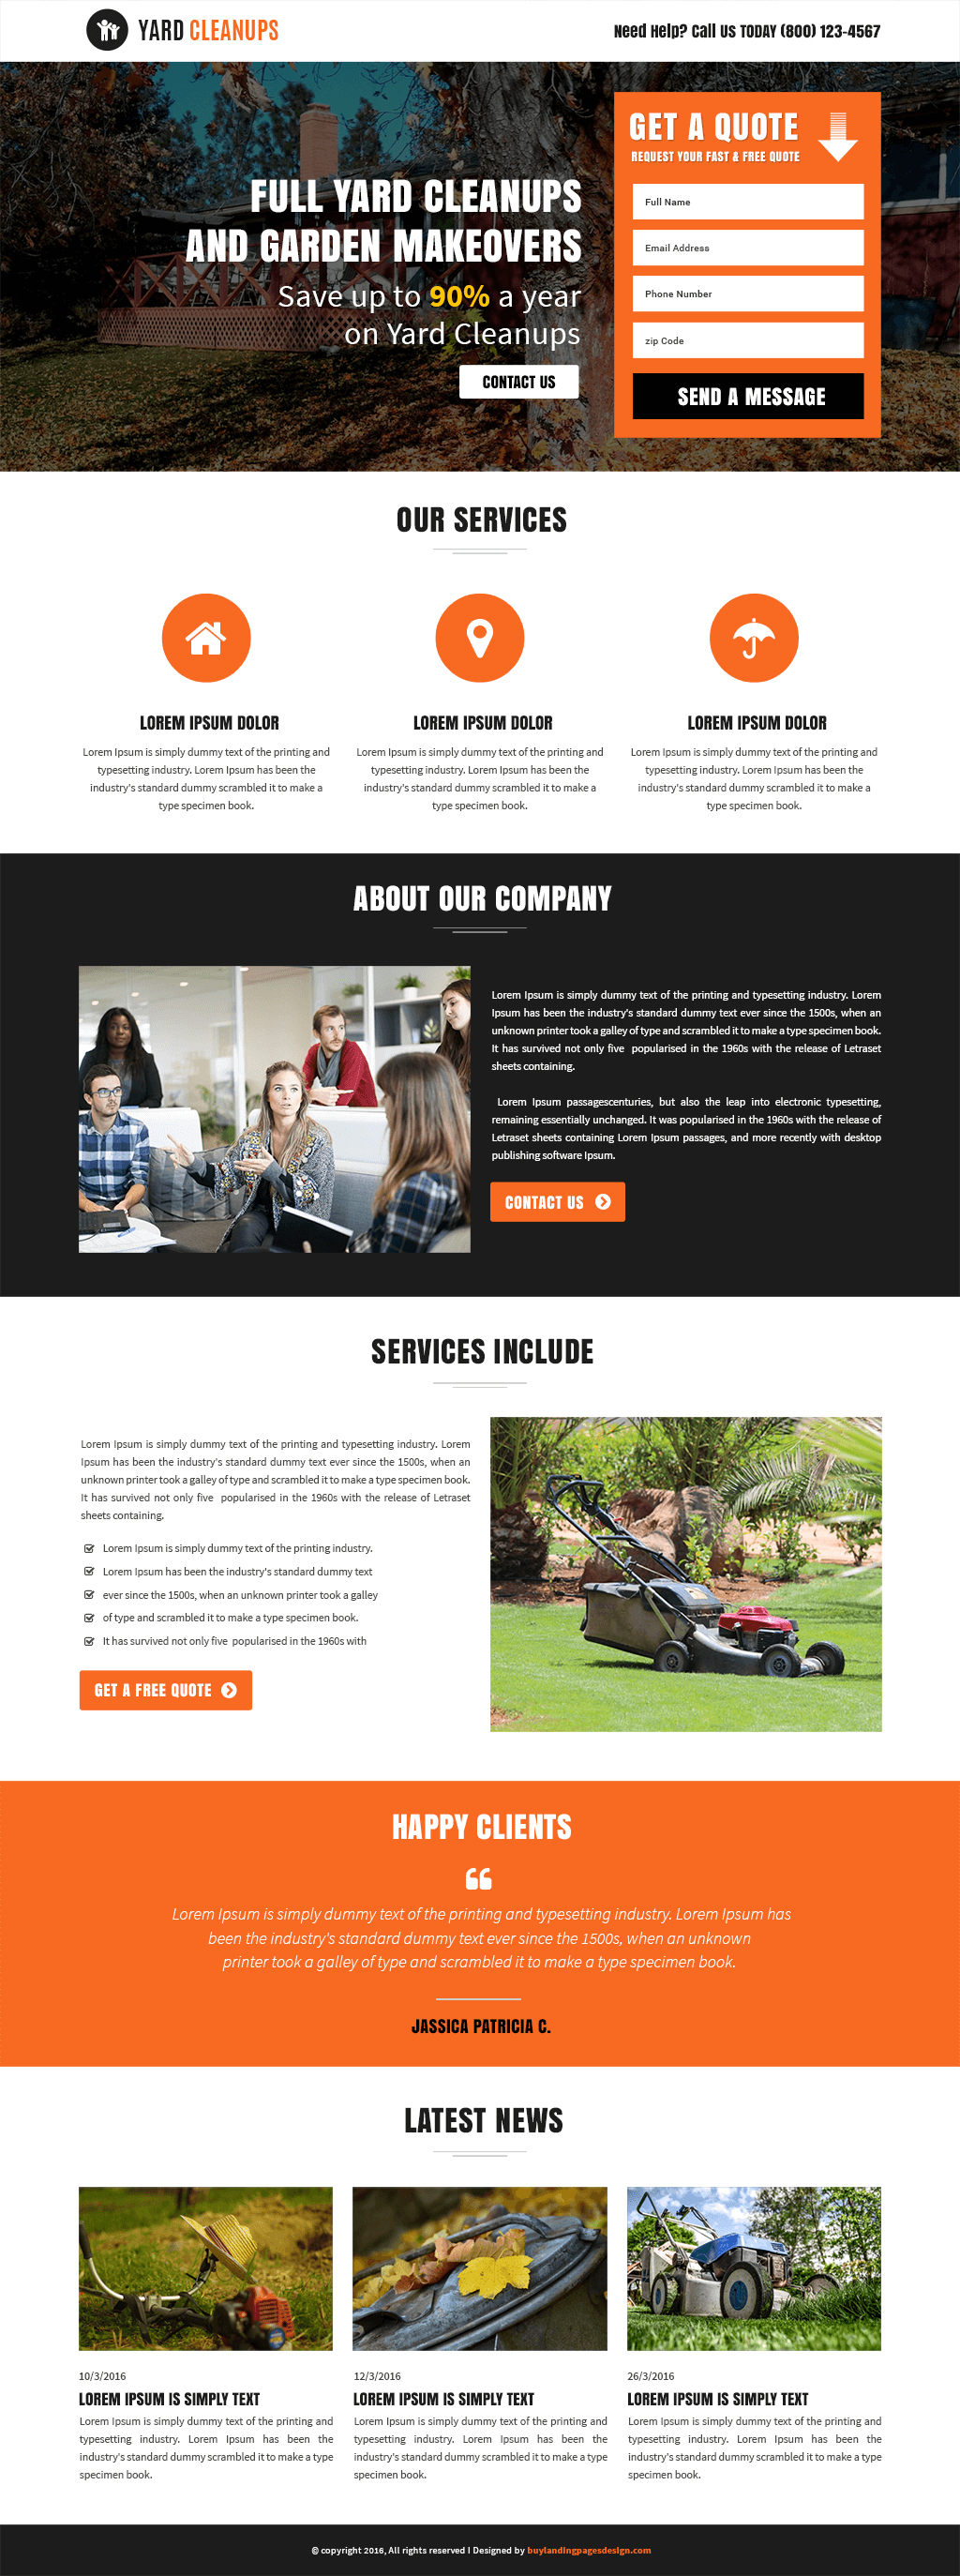 Yard Cleanups Service responsive landing page template